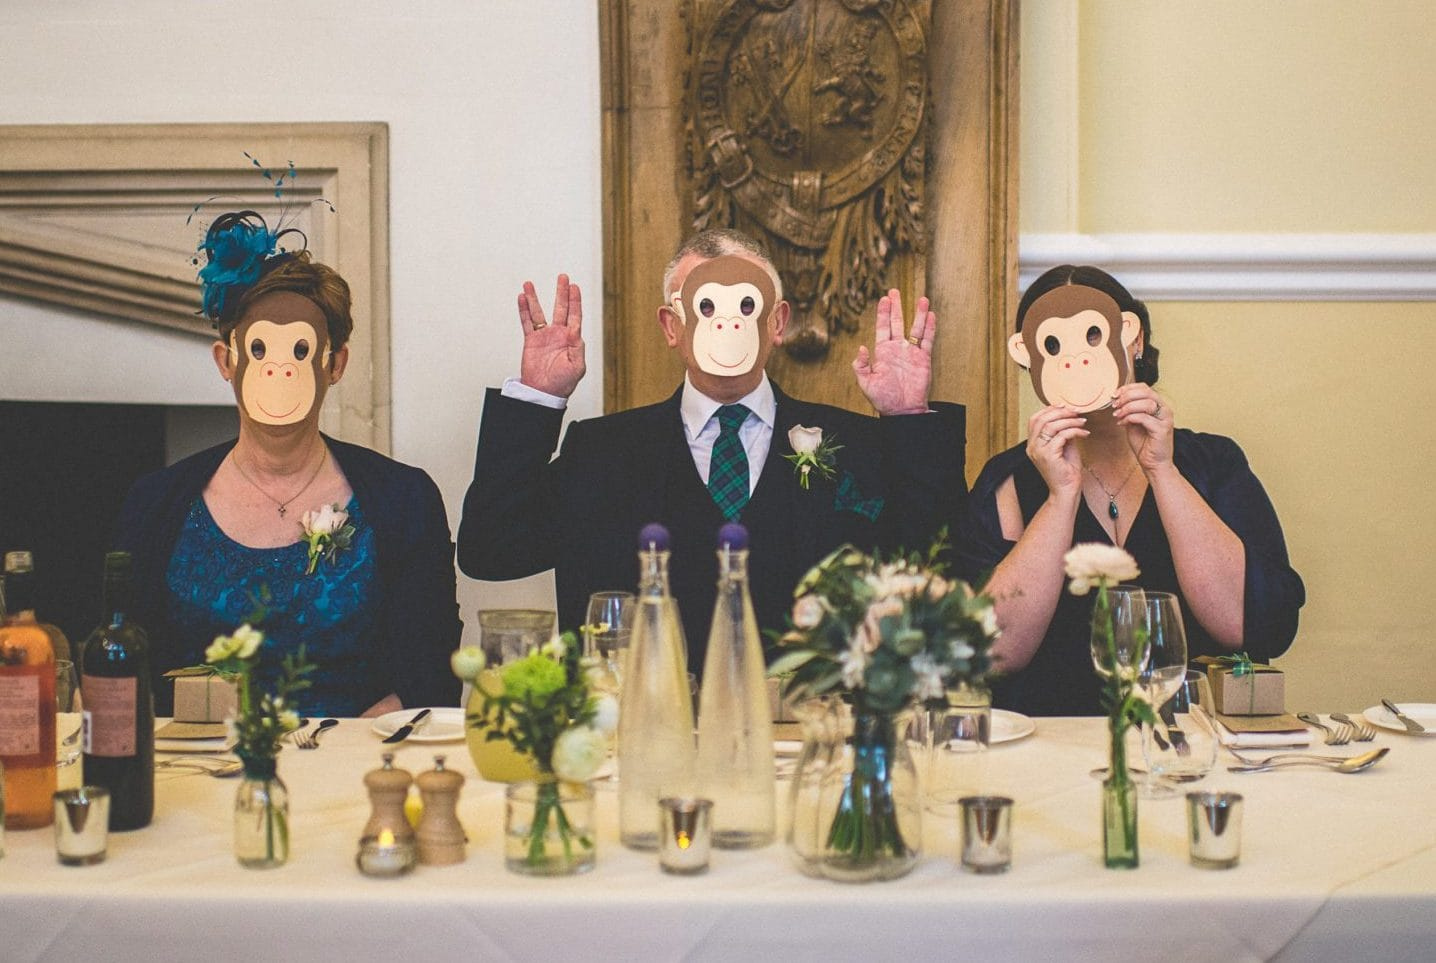 Break the mould by wearing monkey masks like these wedding guests